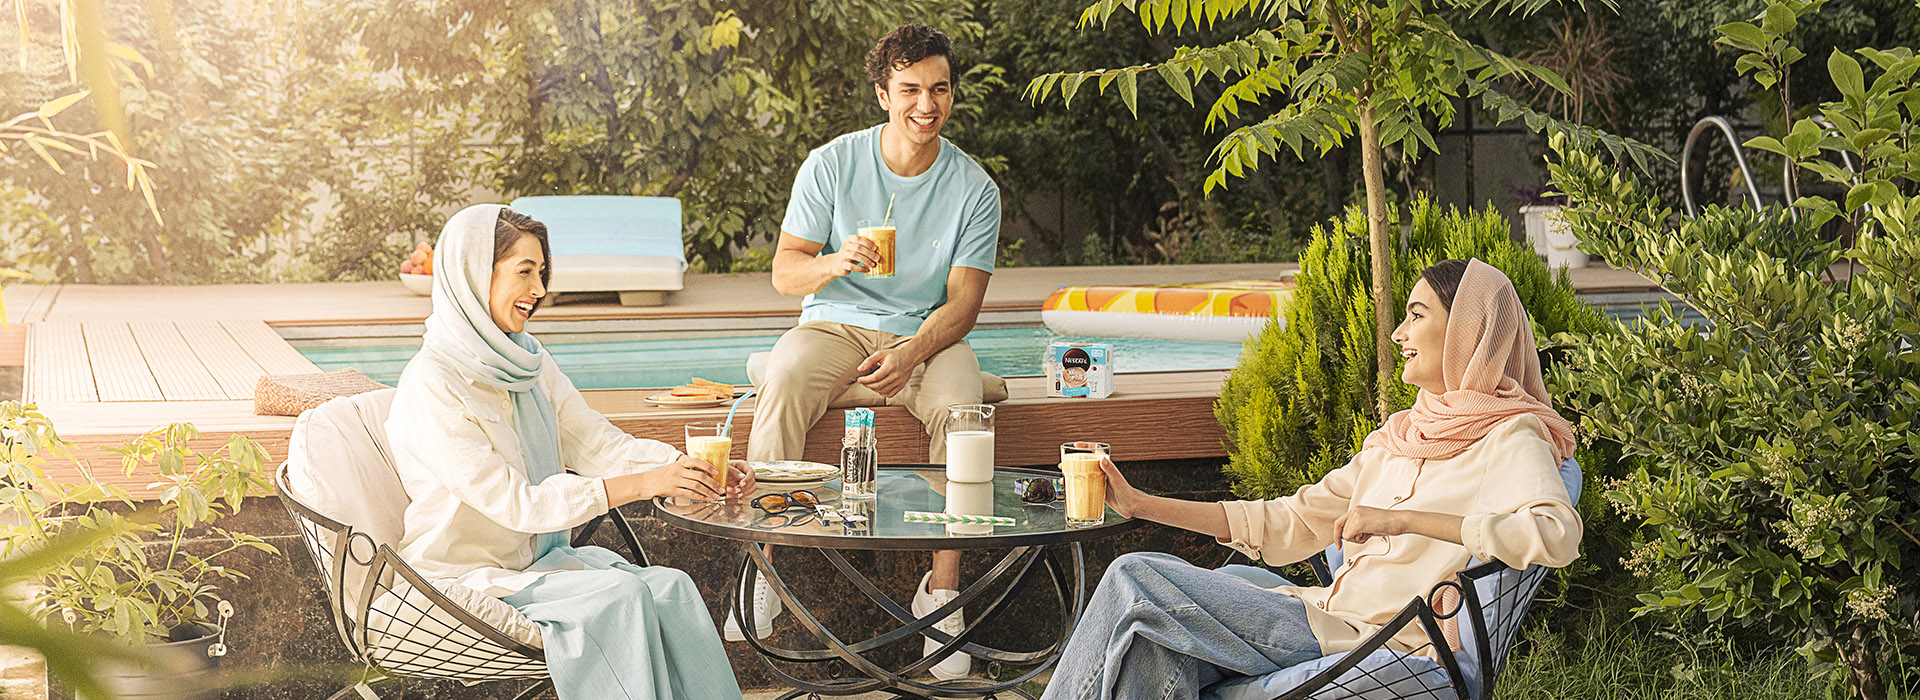 Friends drinking Nescafe Ice together by the pool - emotional marketing